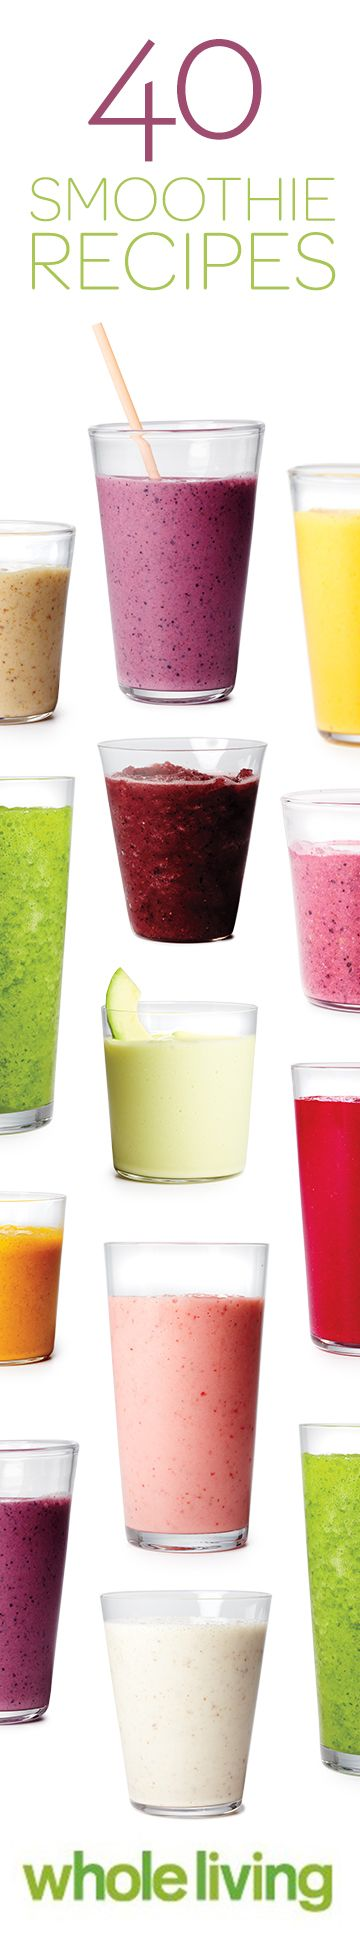 Cool off with these healthy fruit and veggie smoothies: Healthy Snack Recipe, Fruit And Veggie Smoothie, 40 Smoothie, Healthy Fruit Smoothie, Veggie Fruit Smoothie, Fruit And Vegetable Smoothie, Healthy Fruit Recipe, Healthy Smoothie Recipe, Smoothies Juice